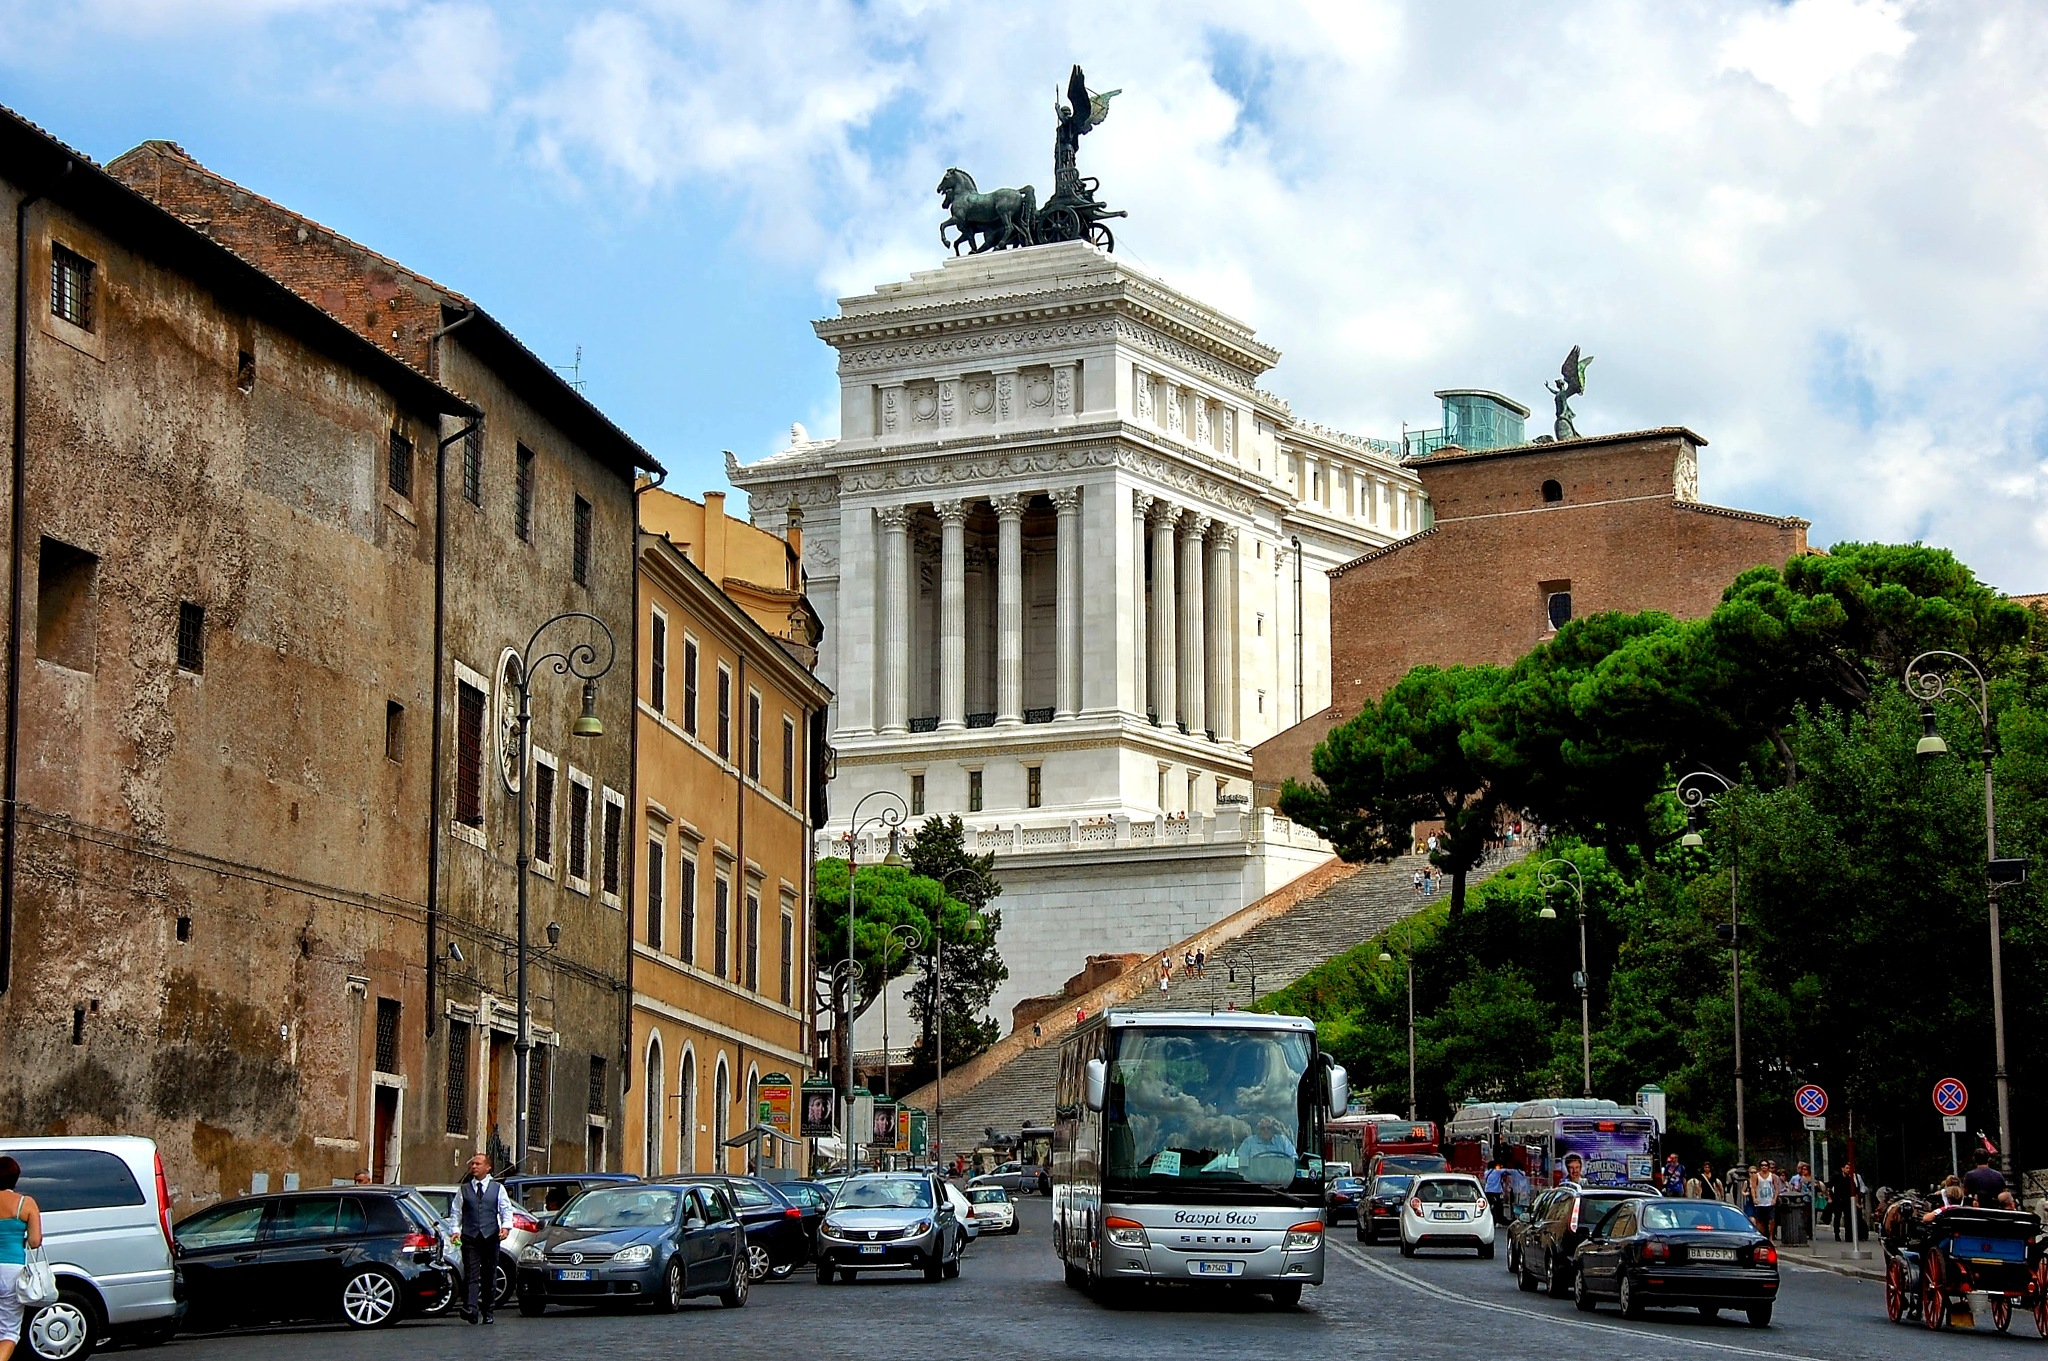 Once In Rome by goga.dt